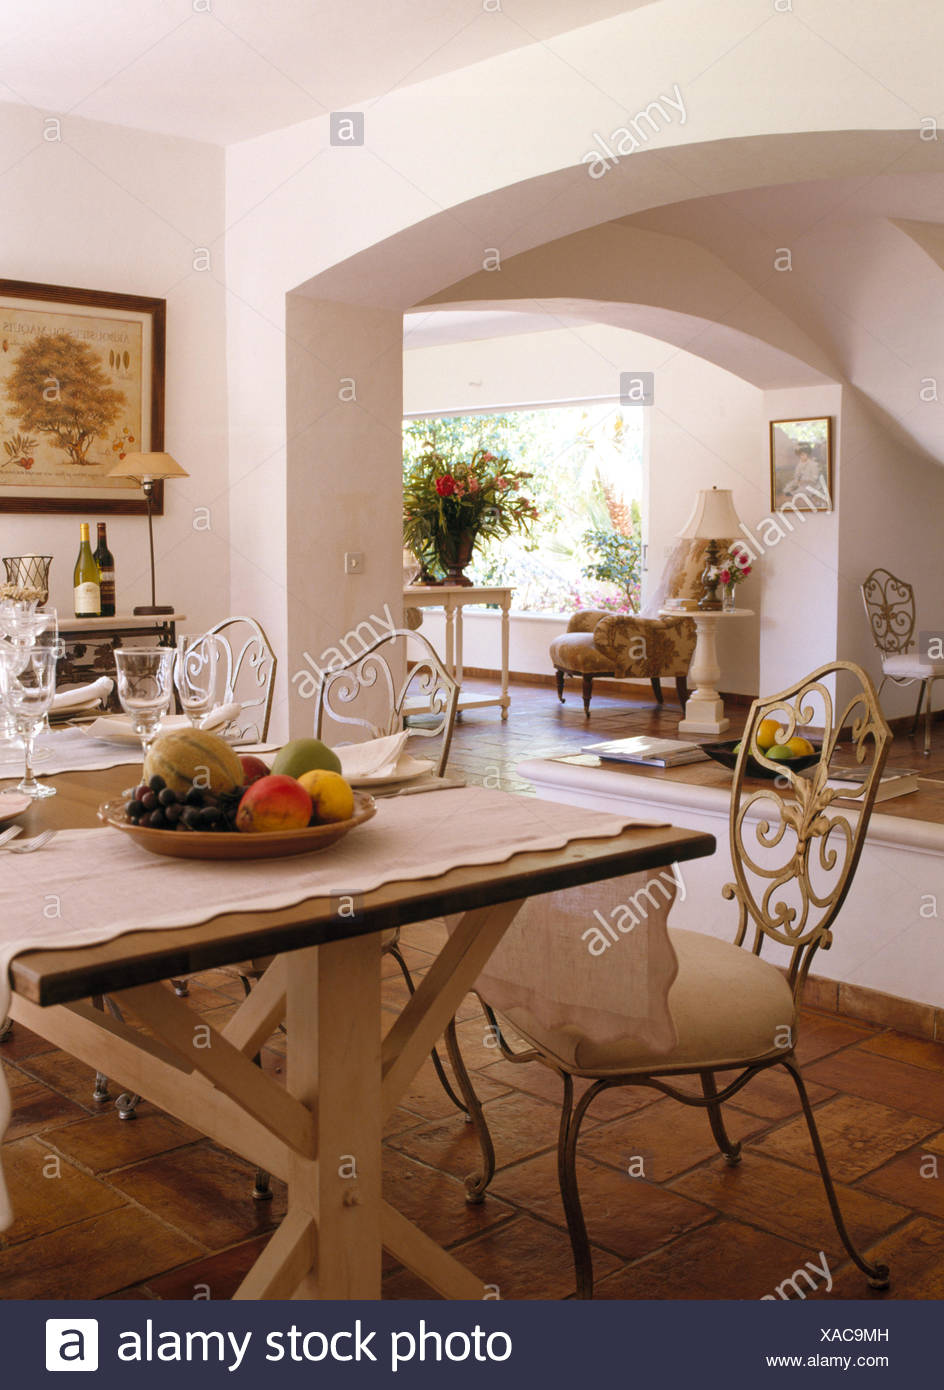 Wrought Iron Chairs At Painted Wooden Table Set For Lunch In French Country Dining Room Stock Photo Alamy